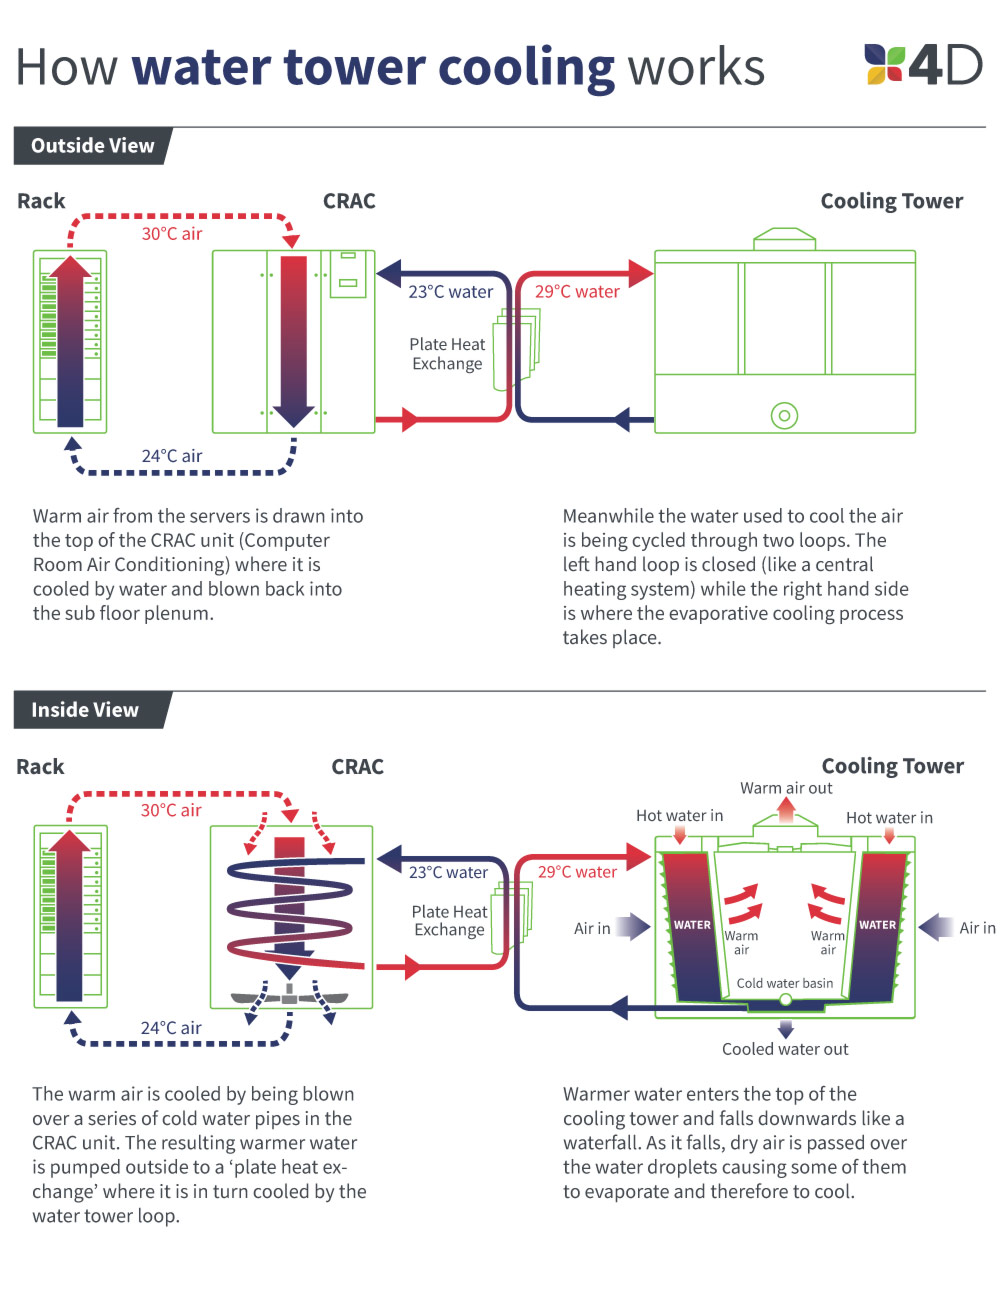 Infographic explaining how water is cooled in a data centre cooling tower